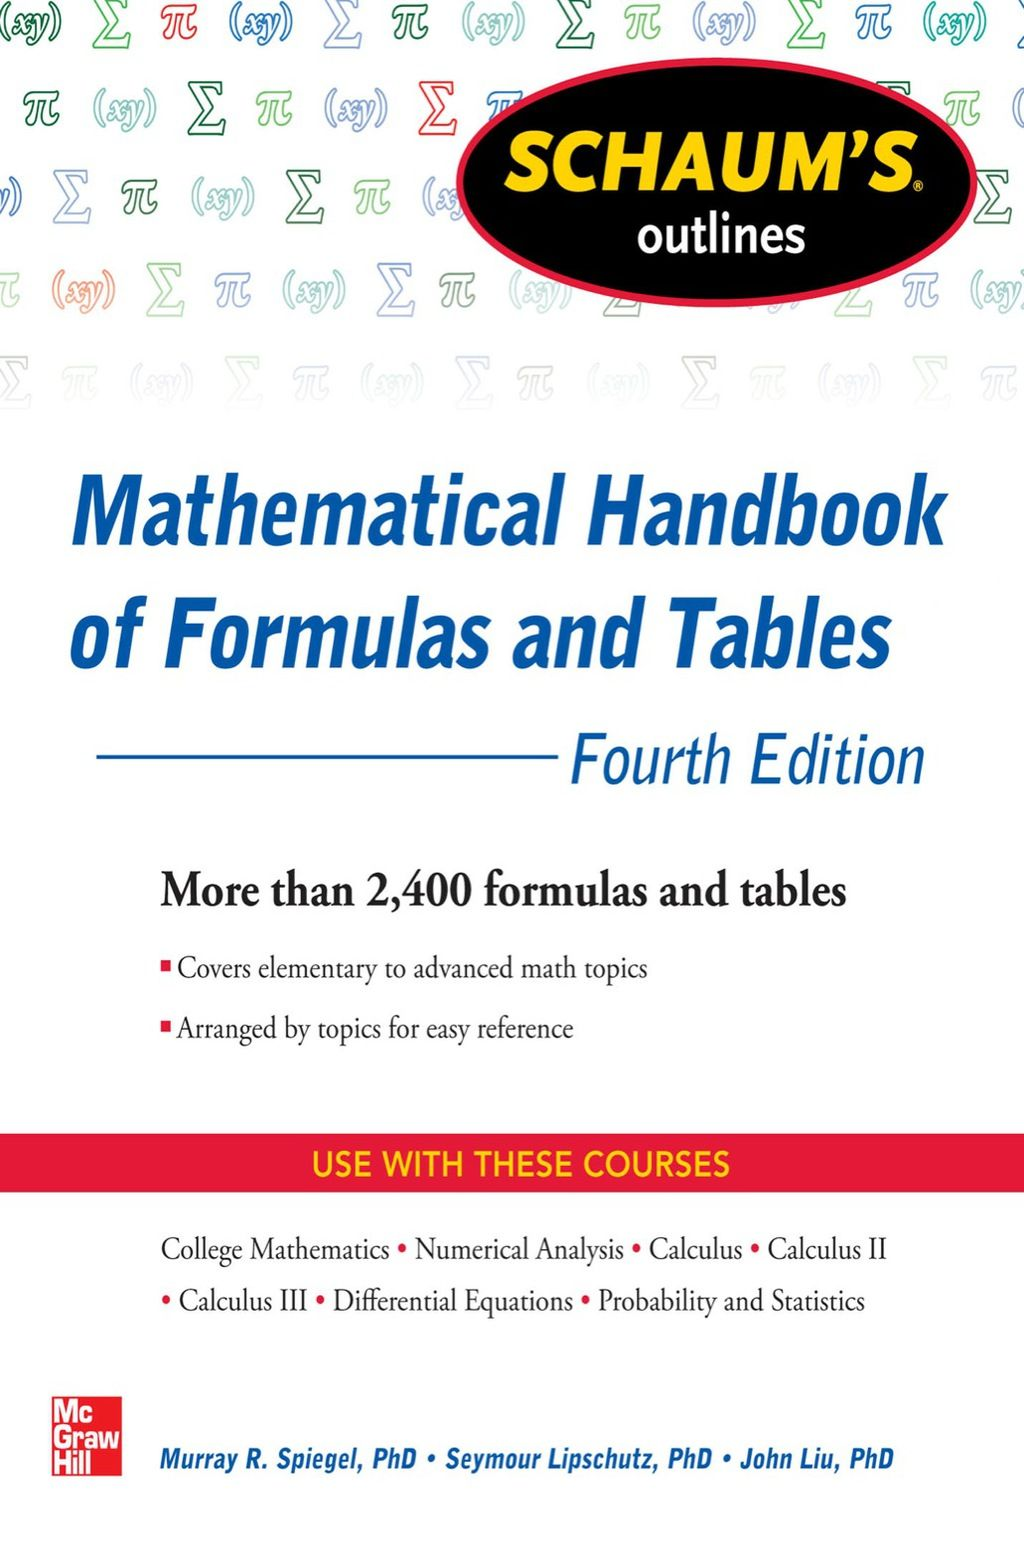 Schaum S Outline Of Mathematical Handbook Of Formulas And Tables 4th Edition Ebook Trigonometrie Livre Livre Pdf